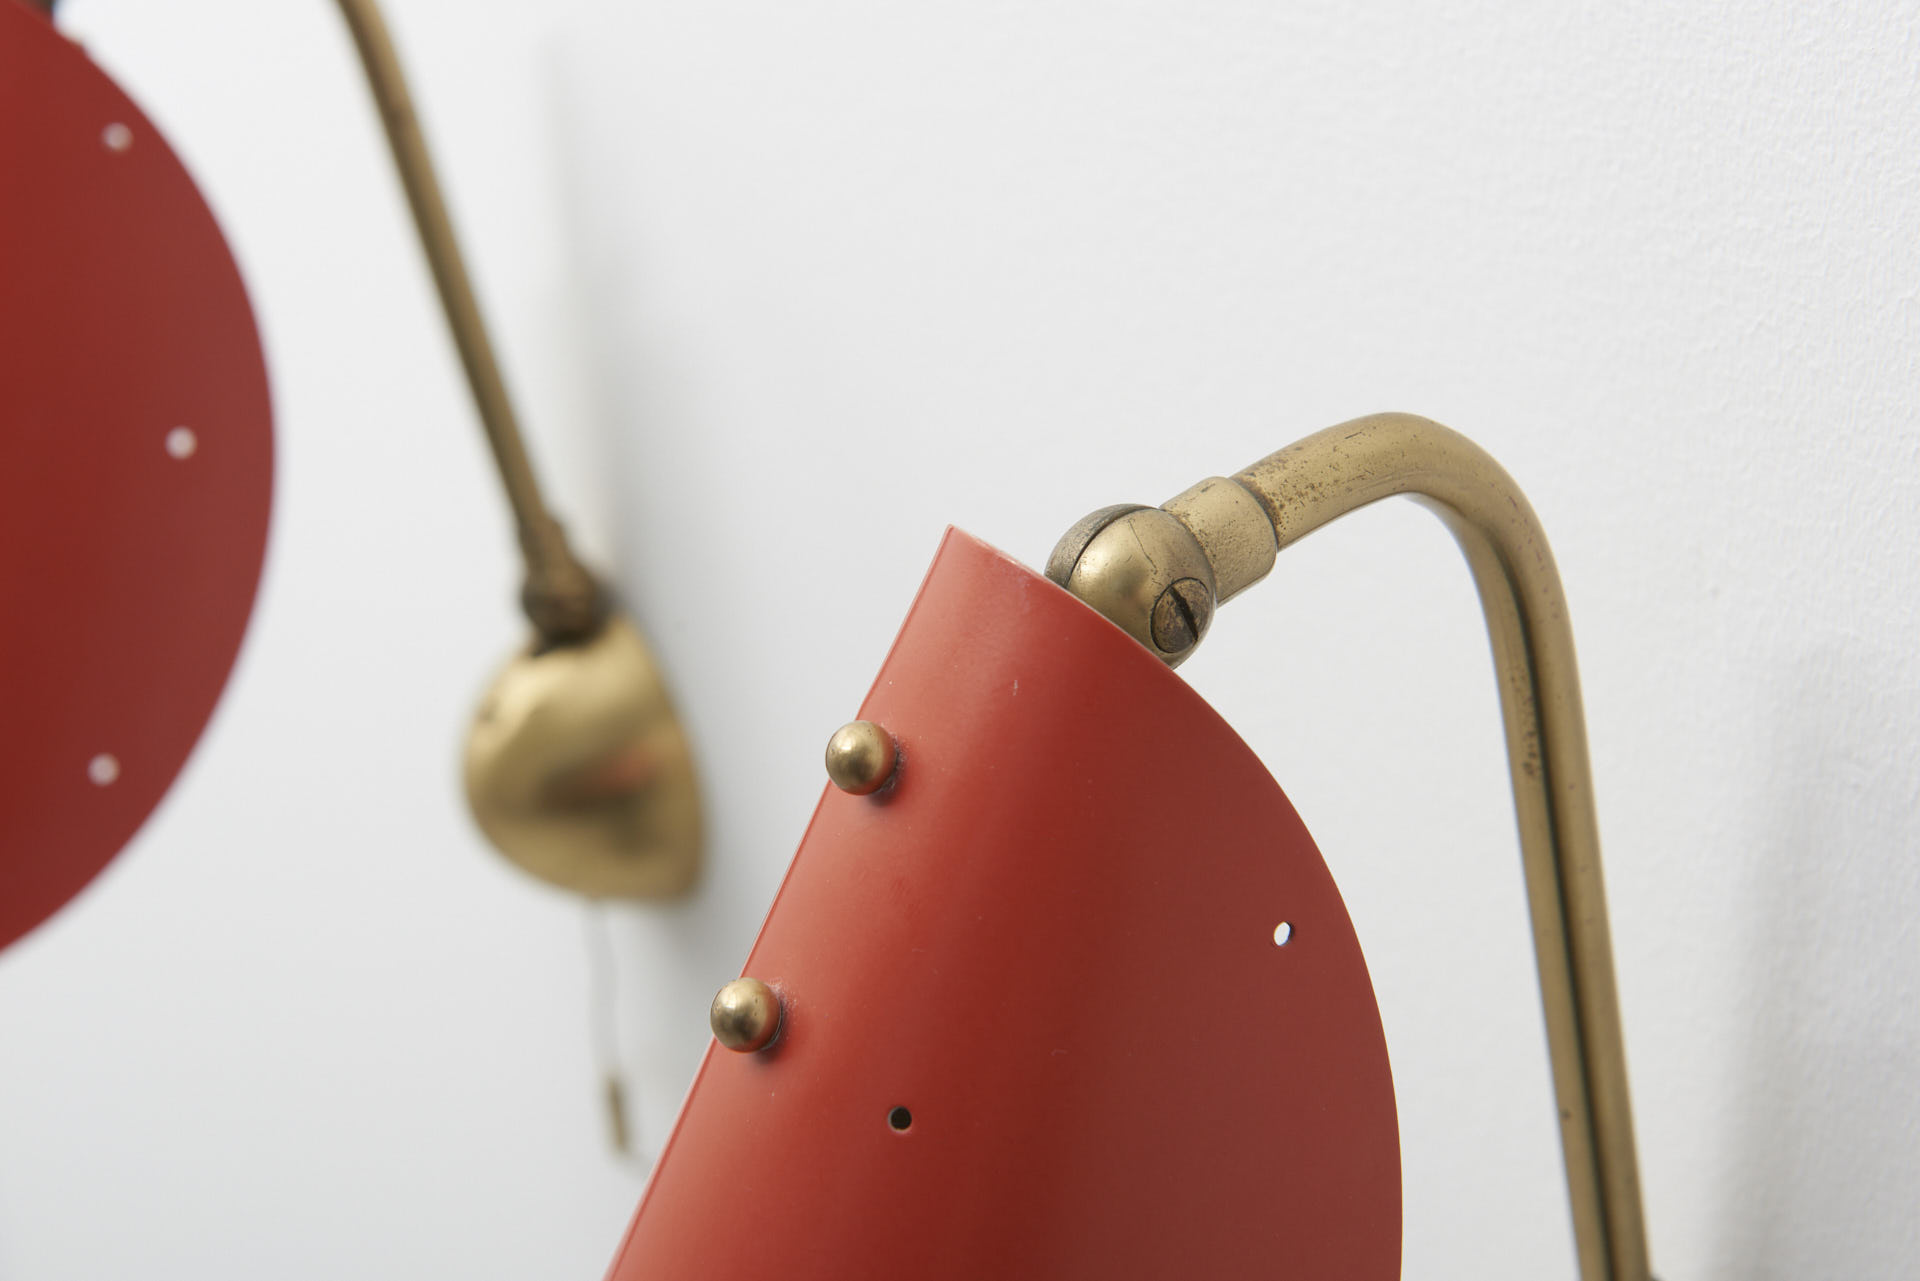 modestfurniture-vintage-1991-pair-wall-lamps-brass-red-shade06